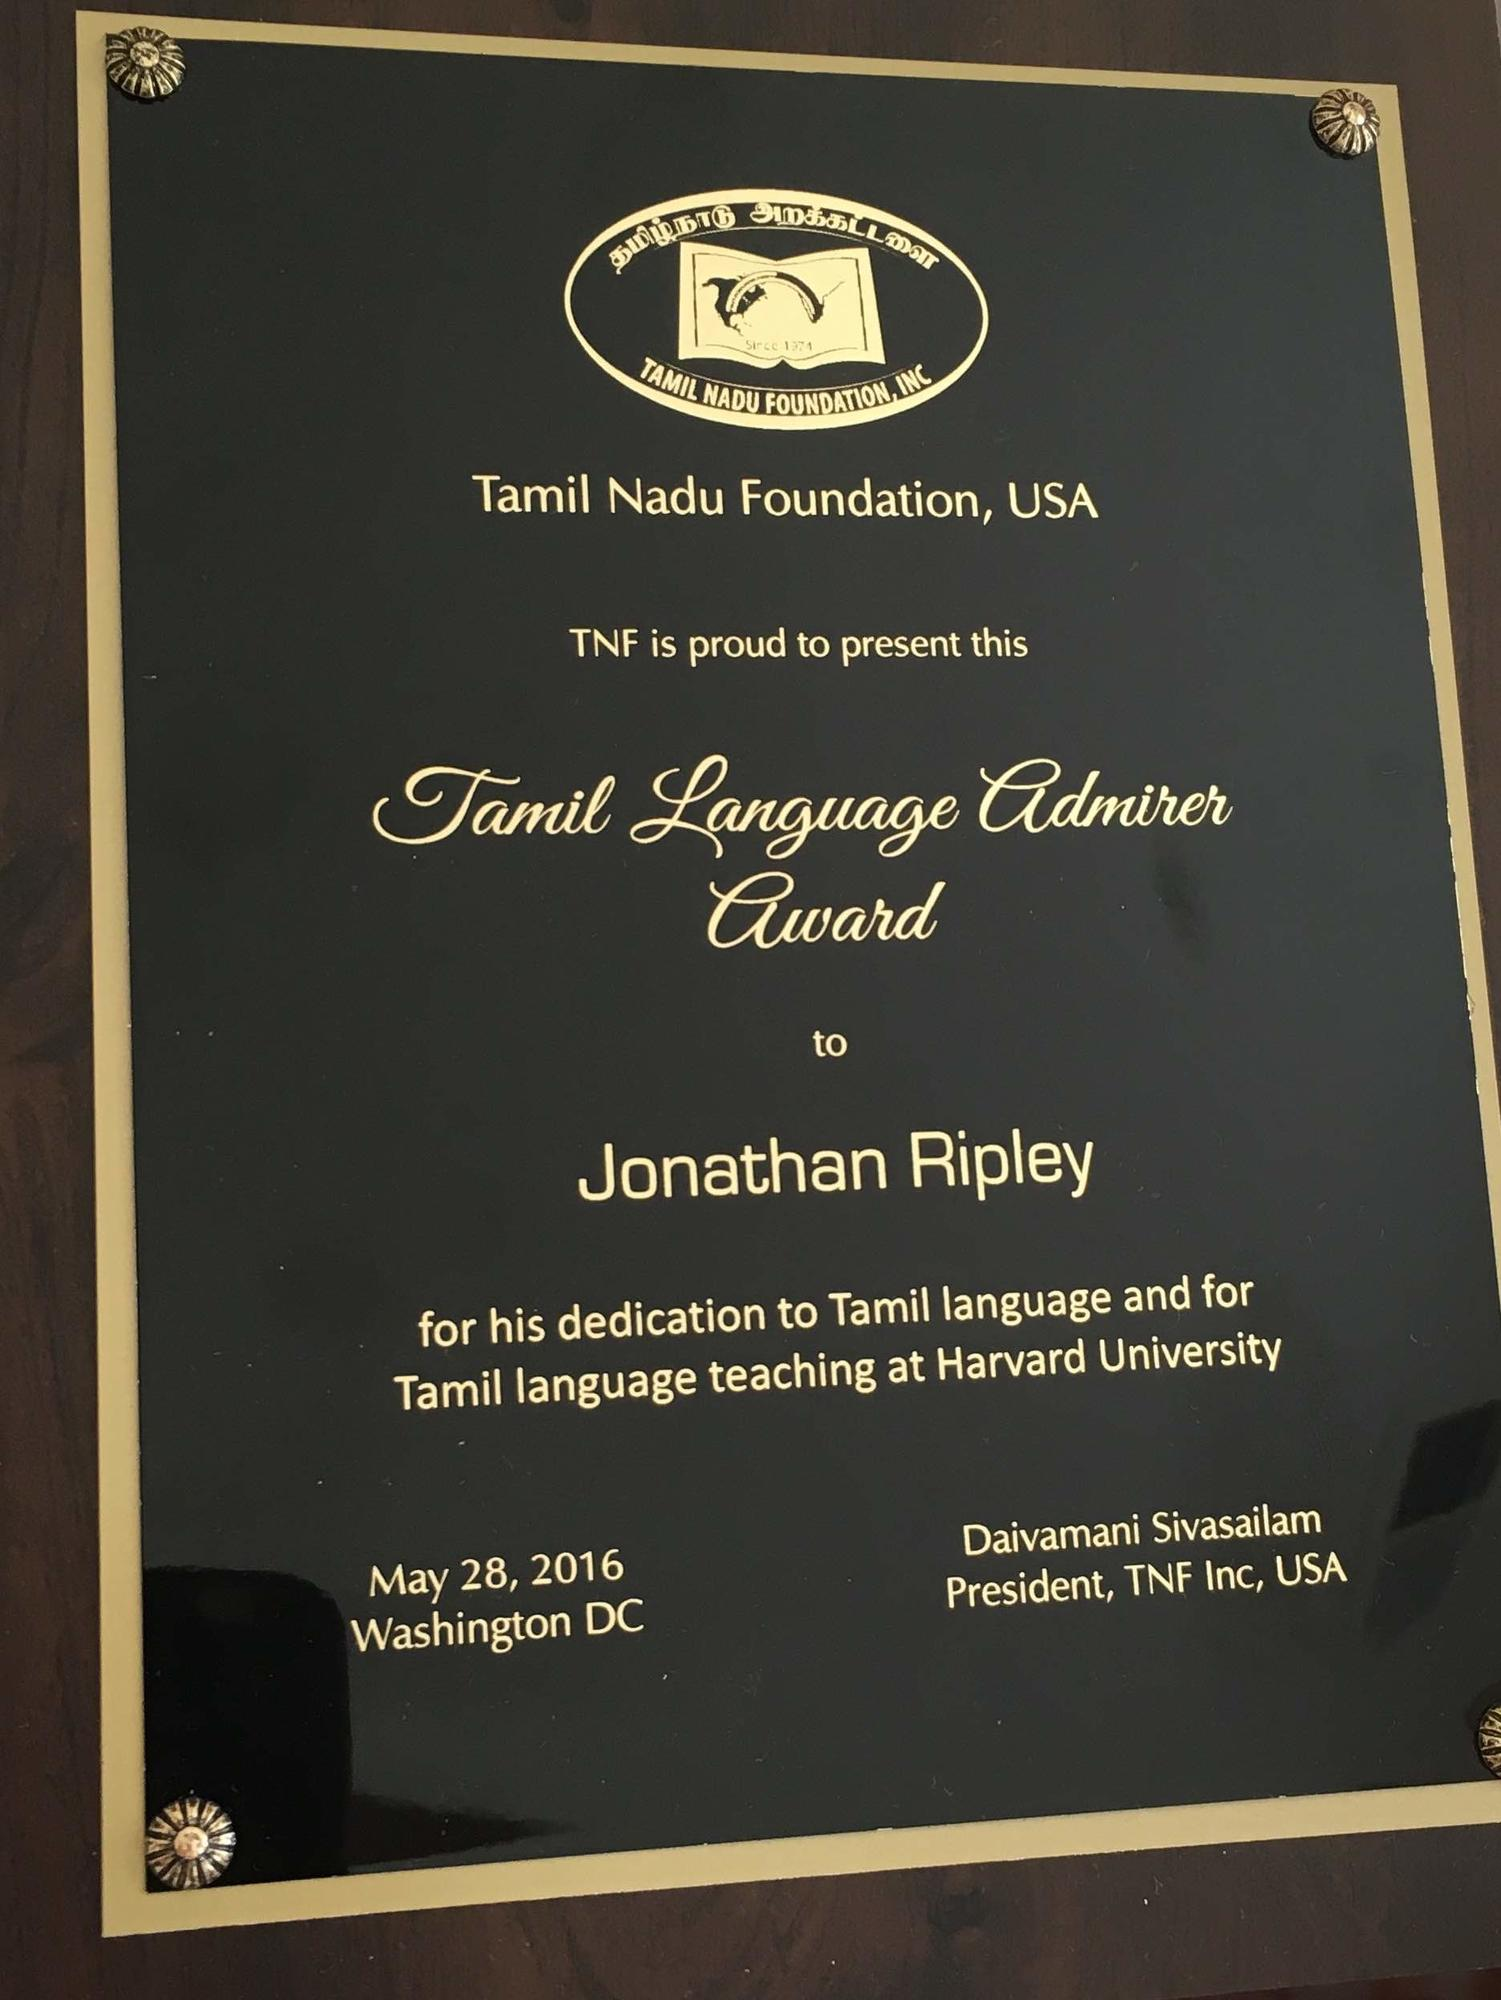 Award to Jonathan Ripley, Preceptor in Tamil, Department of South Asian Studies